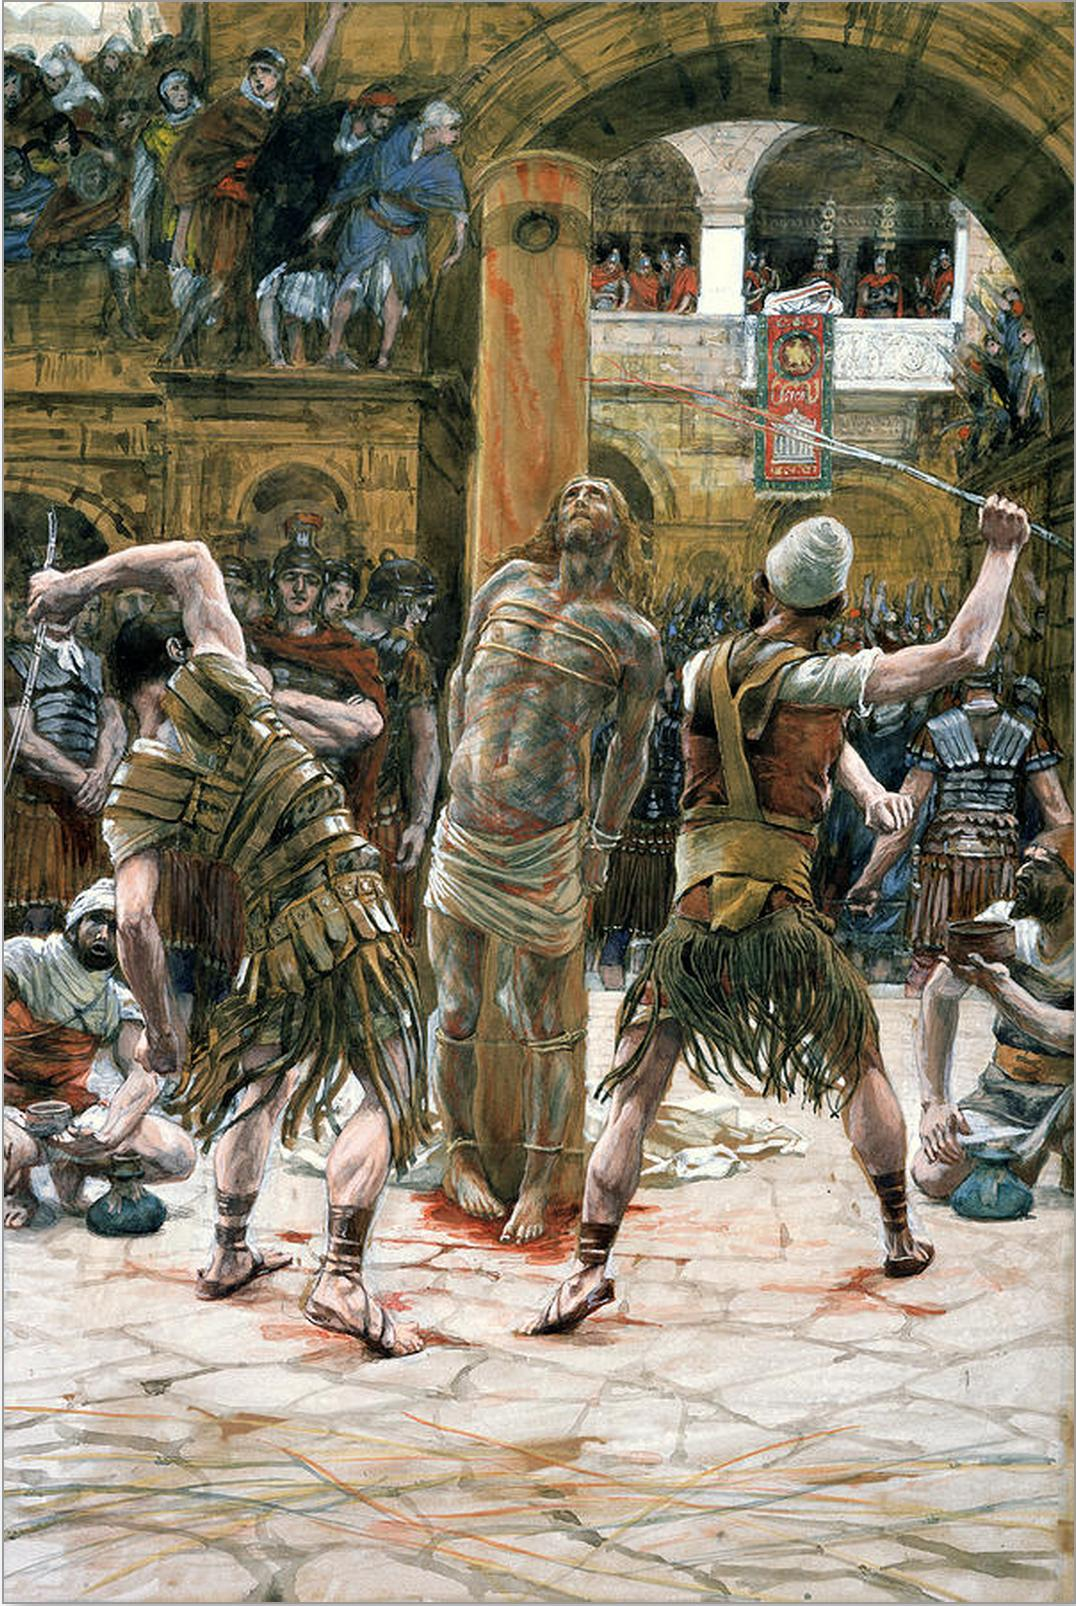 https://uploads6.wikiart.org/images/james-tissot/the-scourging-on-the-front-la-flagellation-de-face.jpg